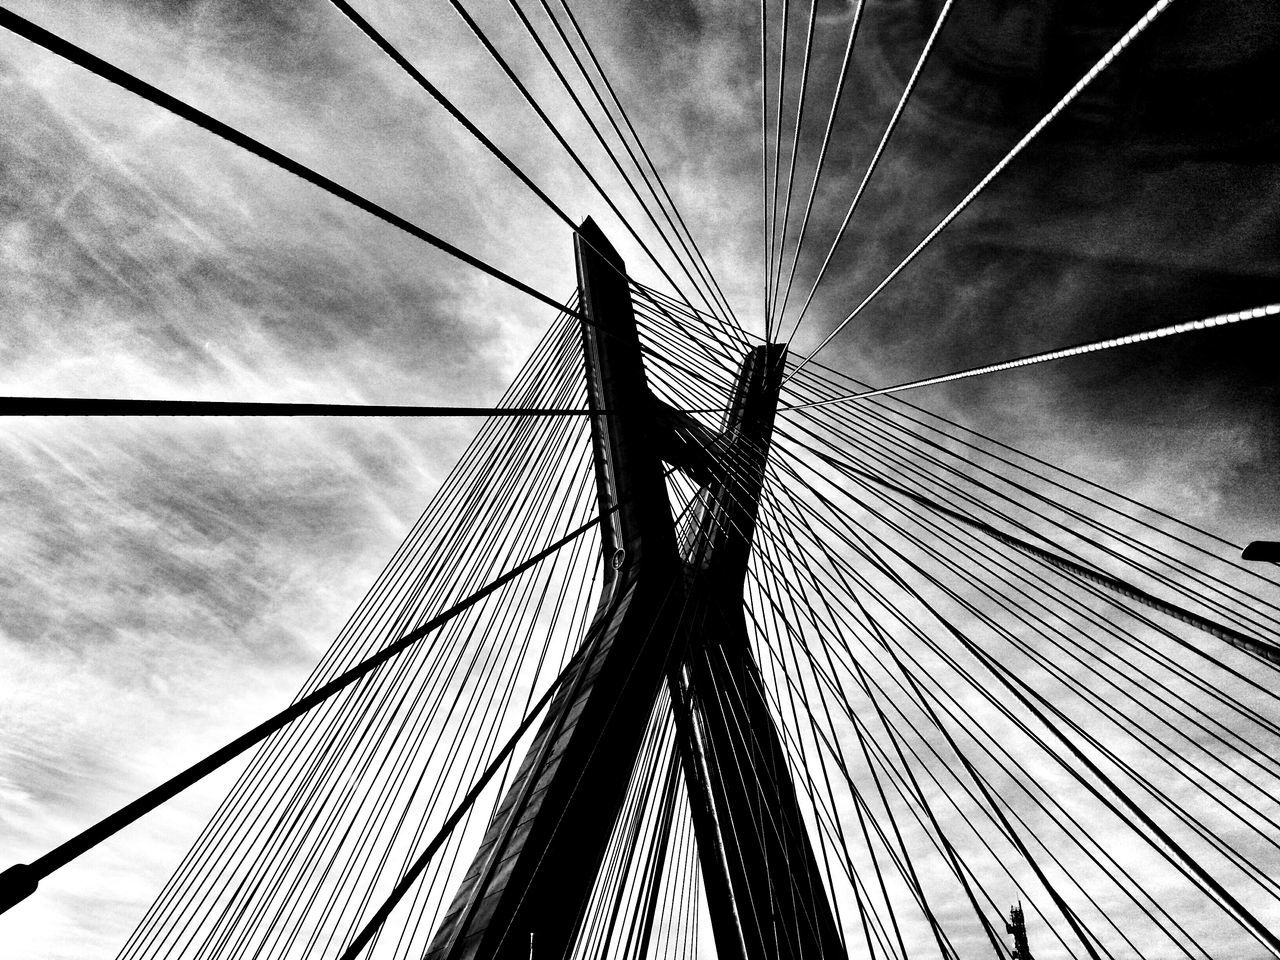 Bridge Architecturephotography Architecture_collection Architecture Ponte Estaiada Otávio Frias Filho, São Paulo, Brazil Sao Paulo - Brazil Streetphoto Street Photography Street Life Blackandwhite Blackandwhite Photography Black And White Collection  Pivotal Ideas